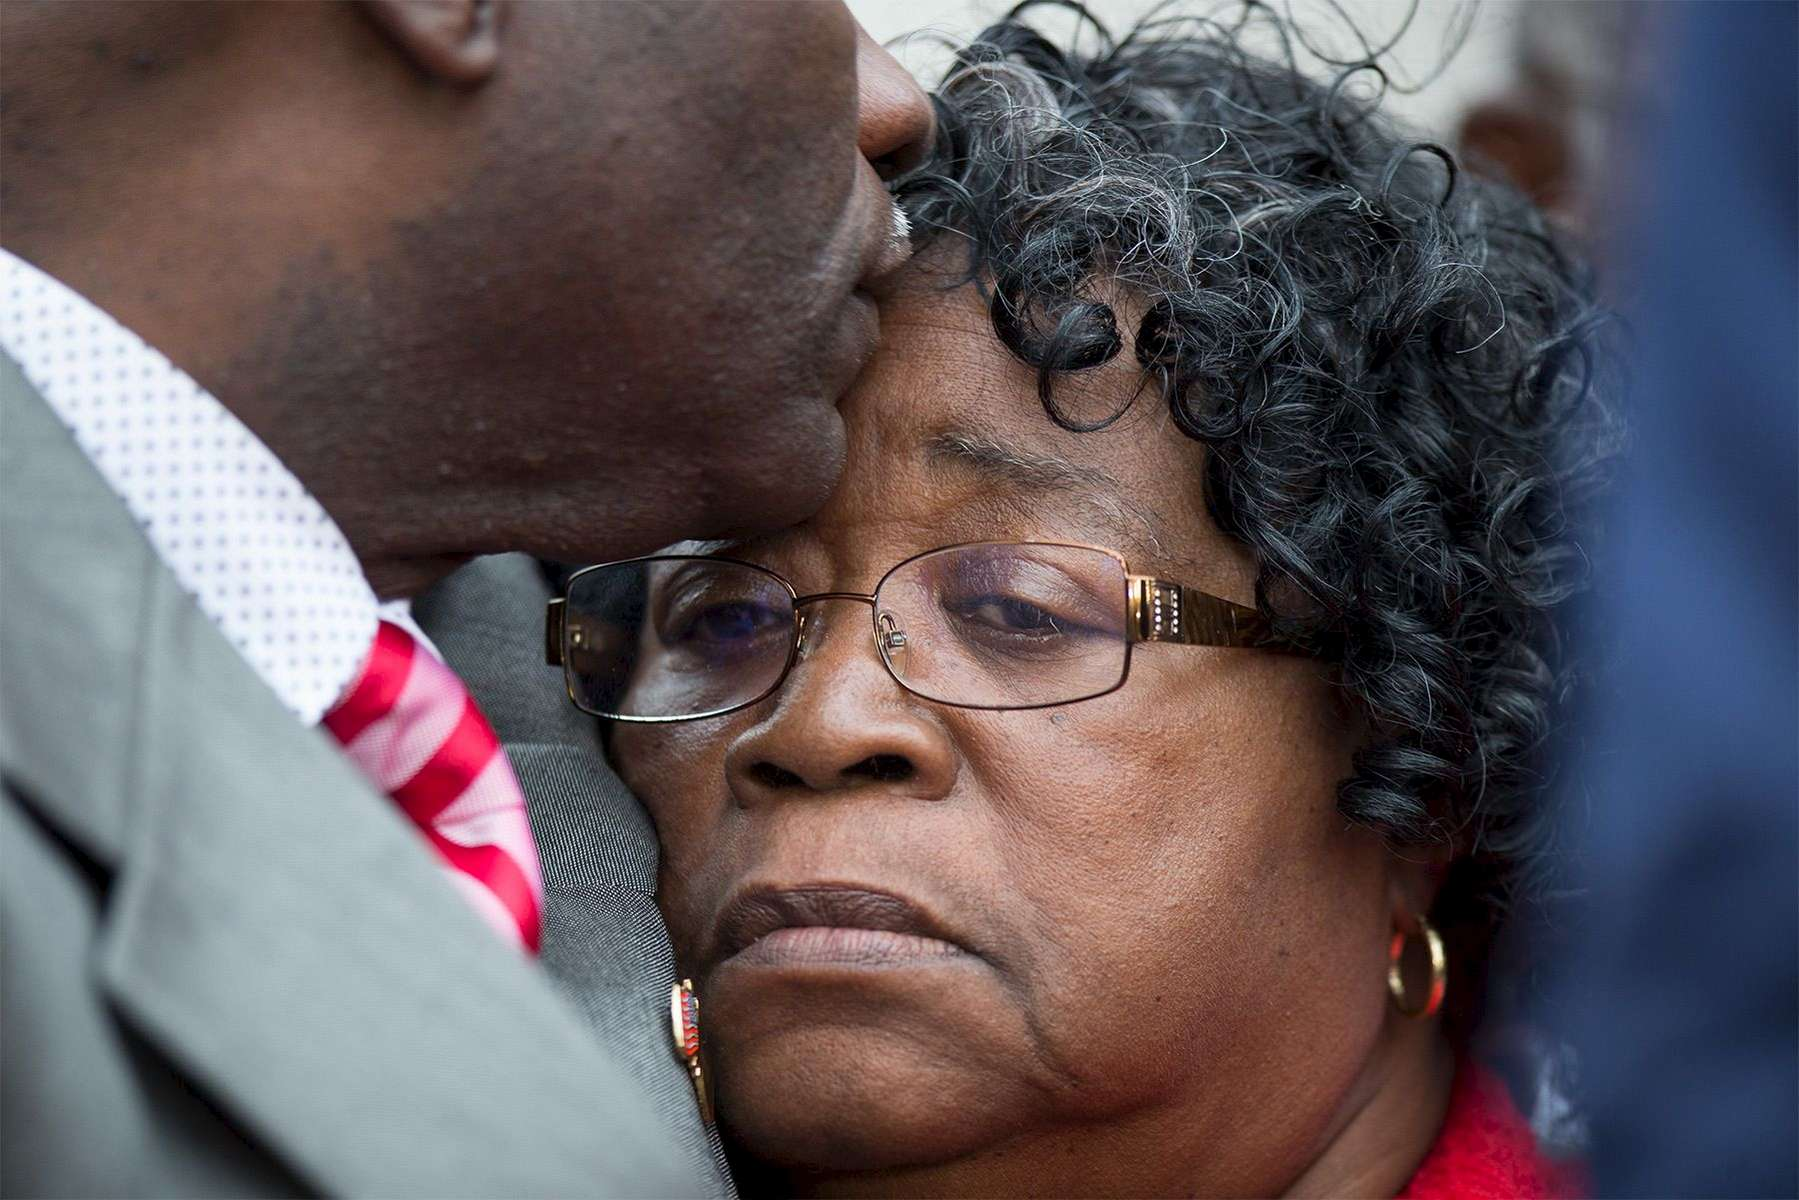 Judy Scott is comforted by her son Rodney after a hung jury was announced in the trial of former North Charleston police officer Michael Slager outside the Charleston County Courthouse in Charleston, South Carolina December 5, 2016. REUTERS/Randall Hill